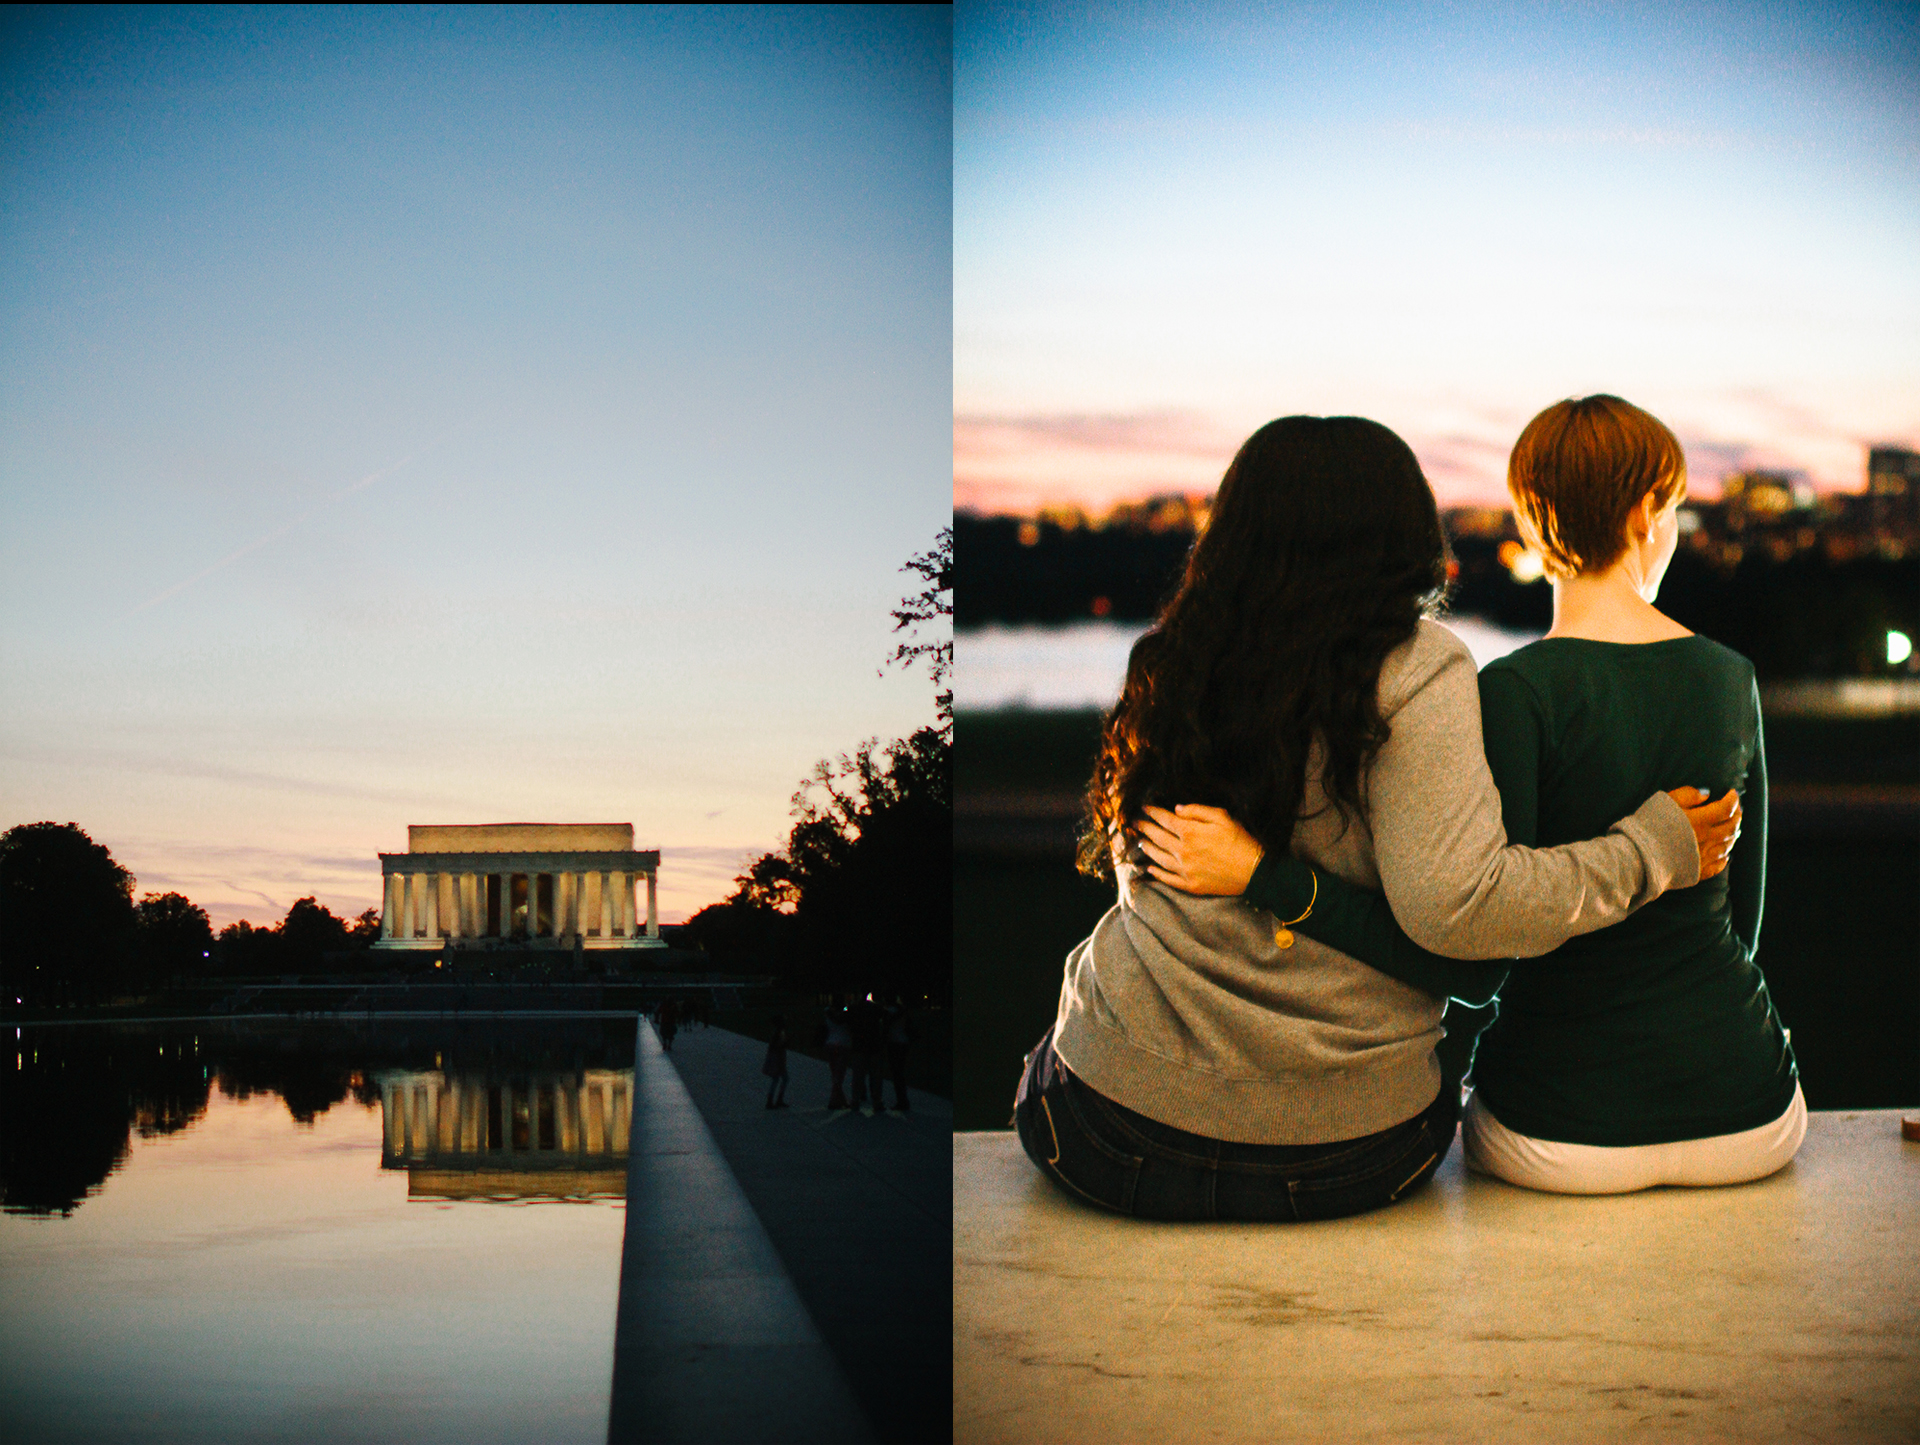 sunset in washington dc.jpg